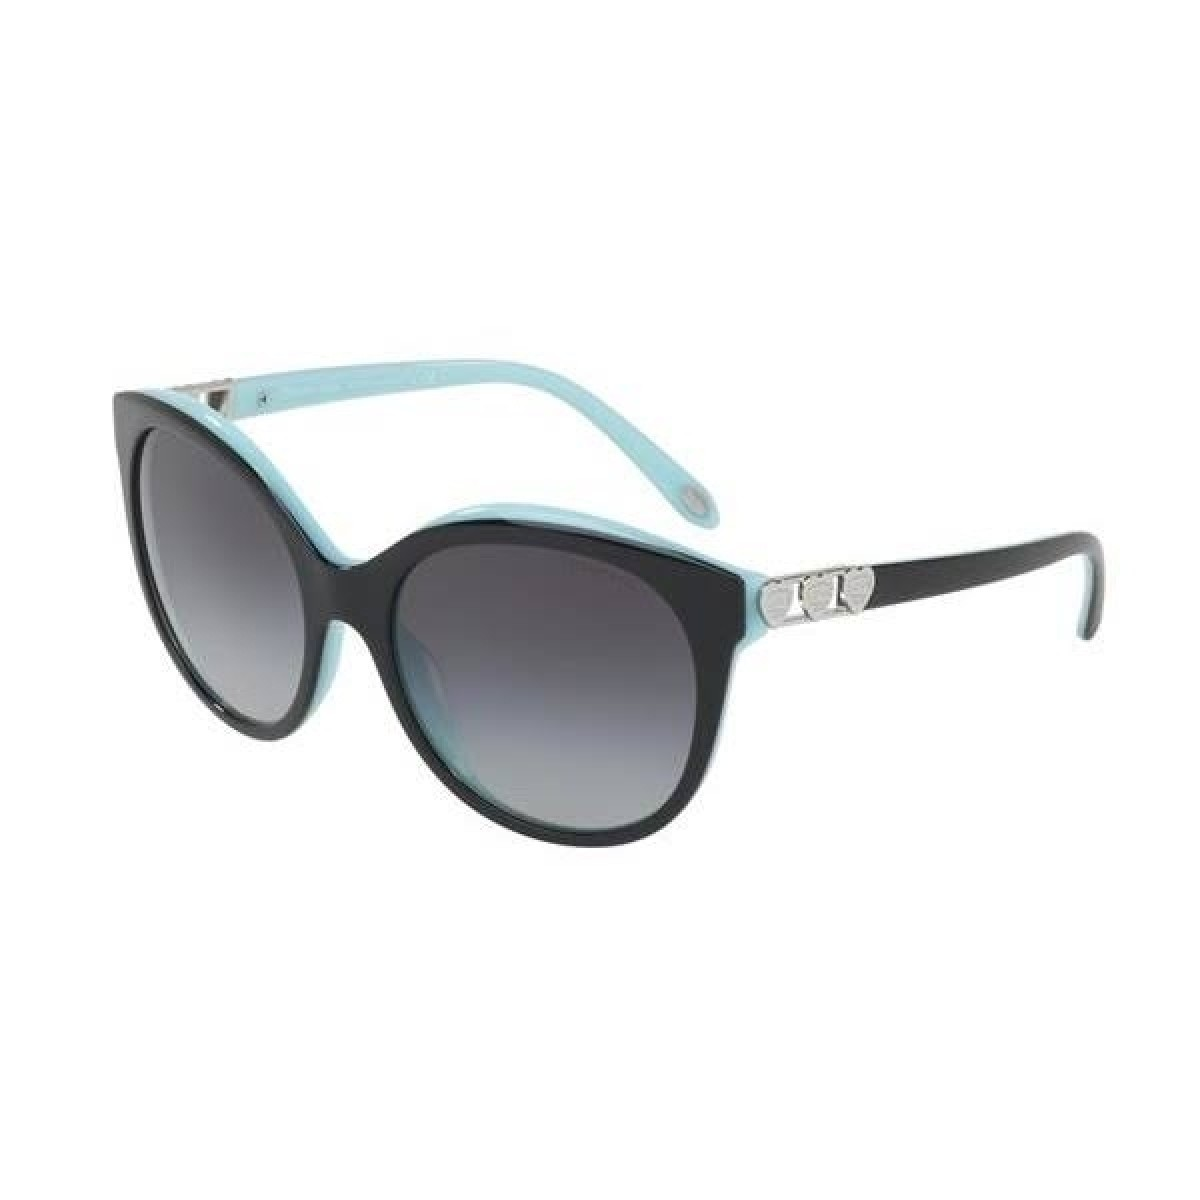 Tiffany & Co. 4133 80553C 56, 217,00 €, Occhiali Tiffany & Co. Nero a forma Farfalla